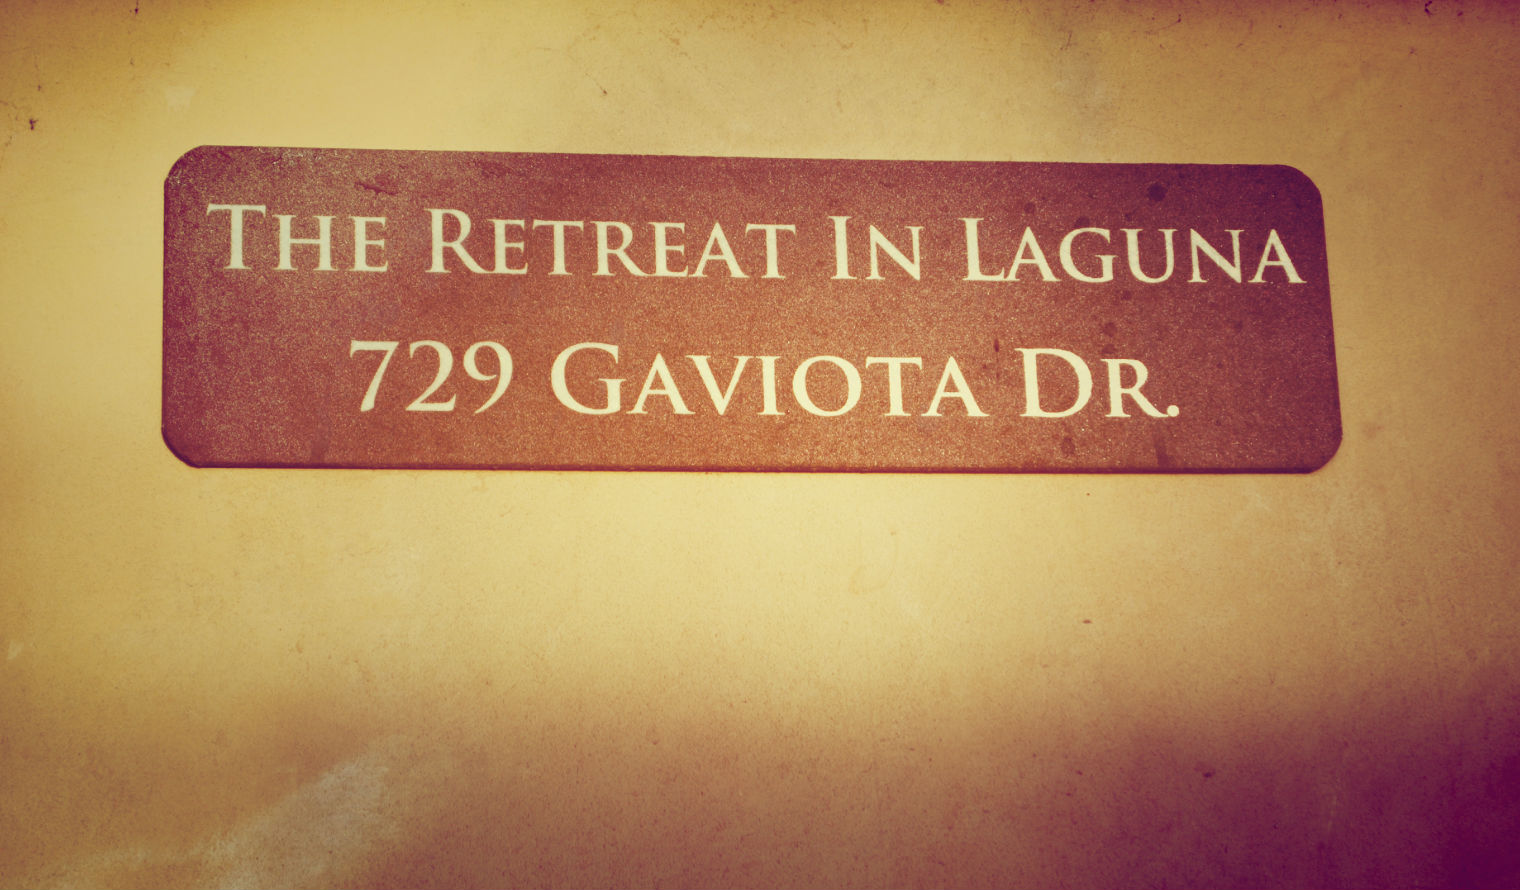 A discreet welcome to The Retreat in Laguna